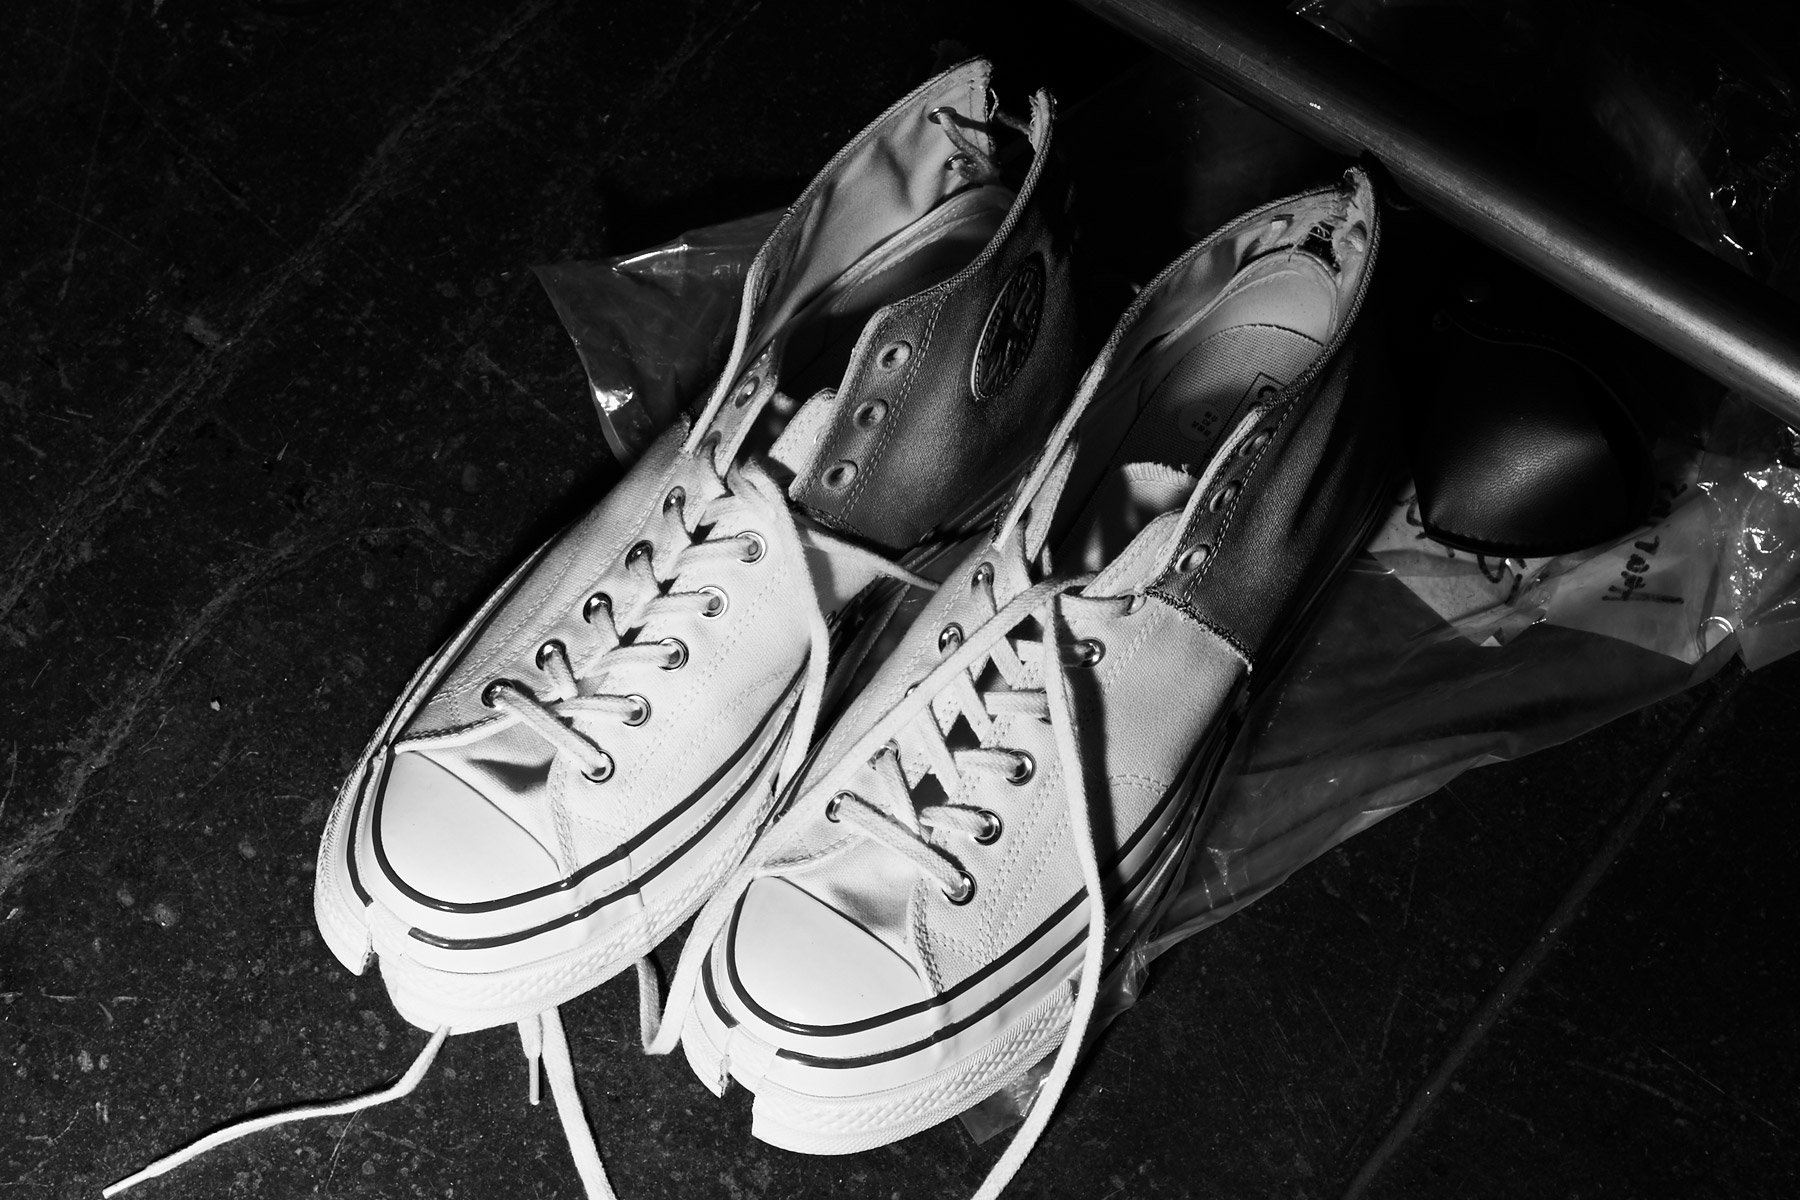 Customized Converse Chuck Taylor's backstage at Feng Chen Wang for Spring 2019. Photographed by Alexander Thompson for Ponyboy magazine.